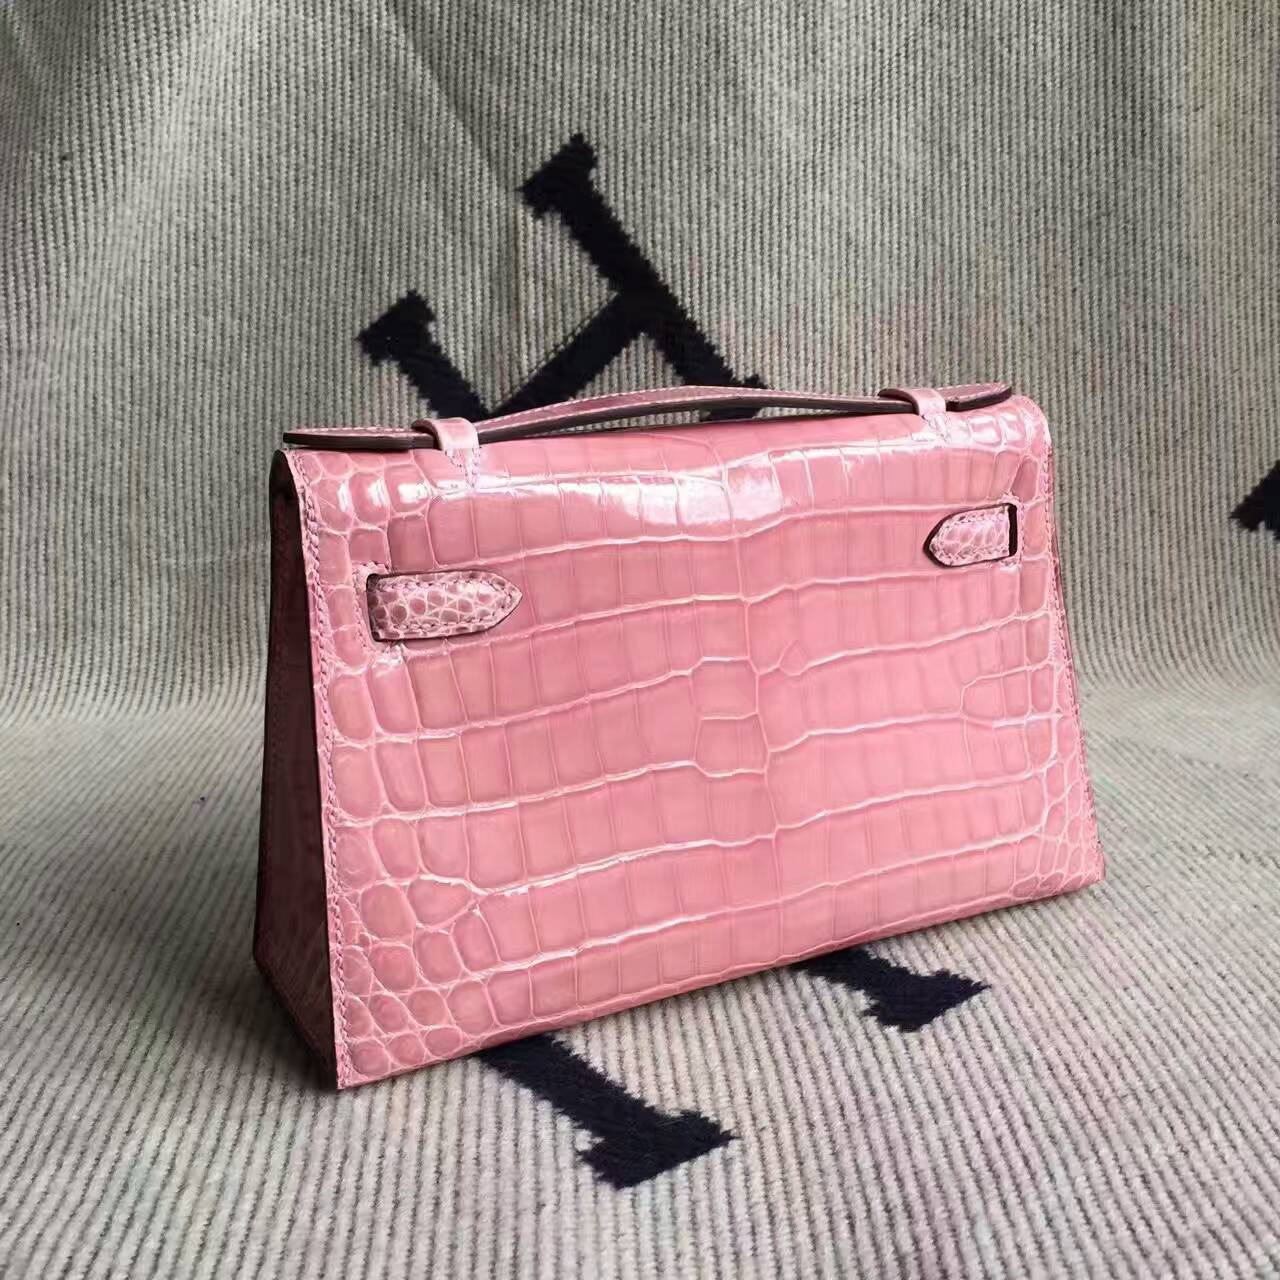 Discount Hermes 5Z Rose Indienne Crocodile Shiny Leather Minikelly Clutch Bag 22CM